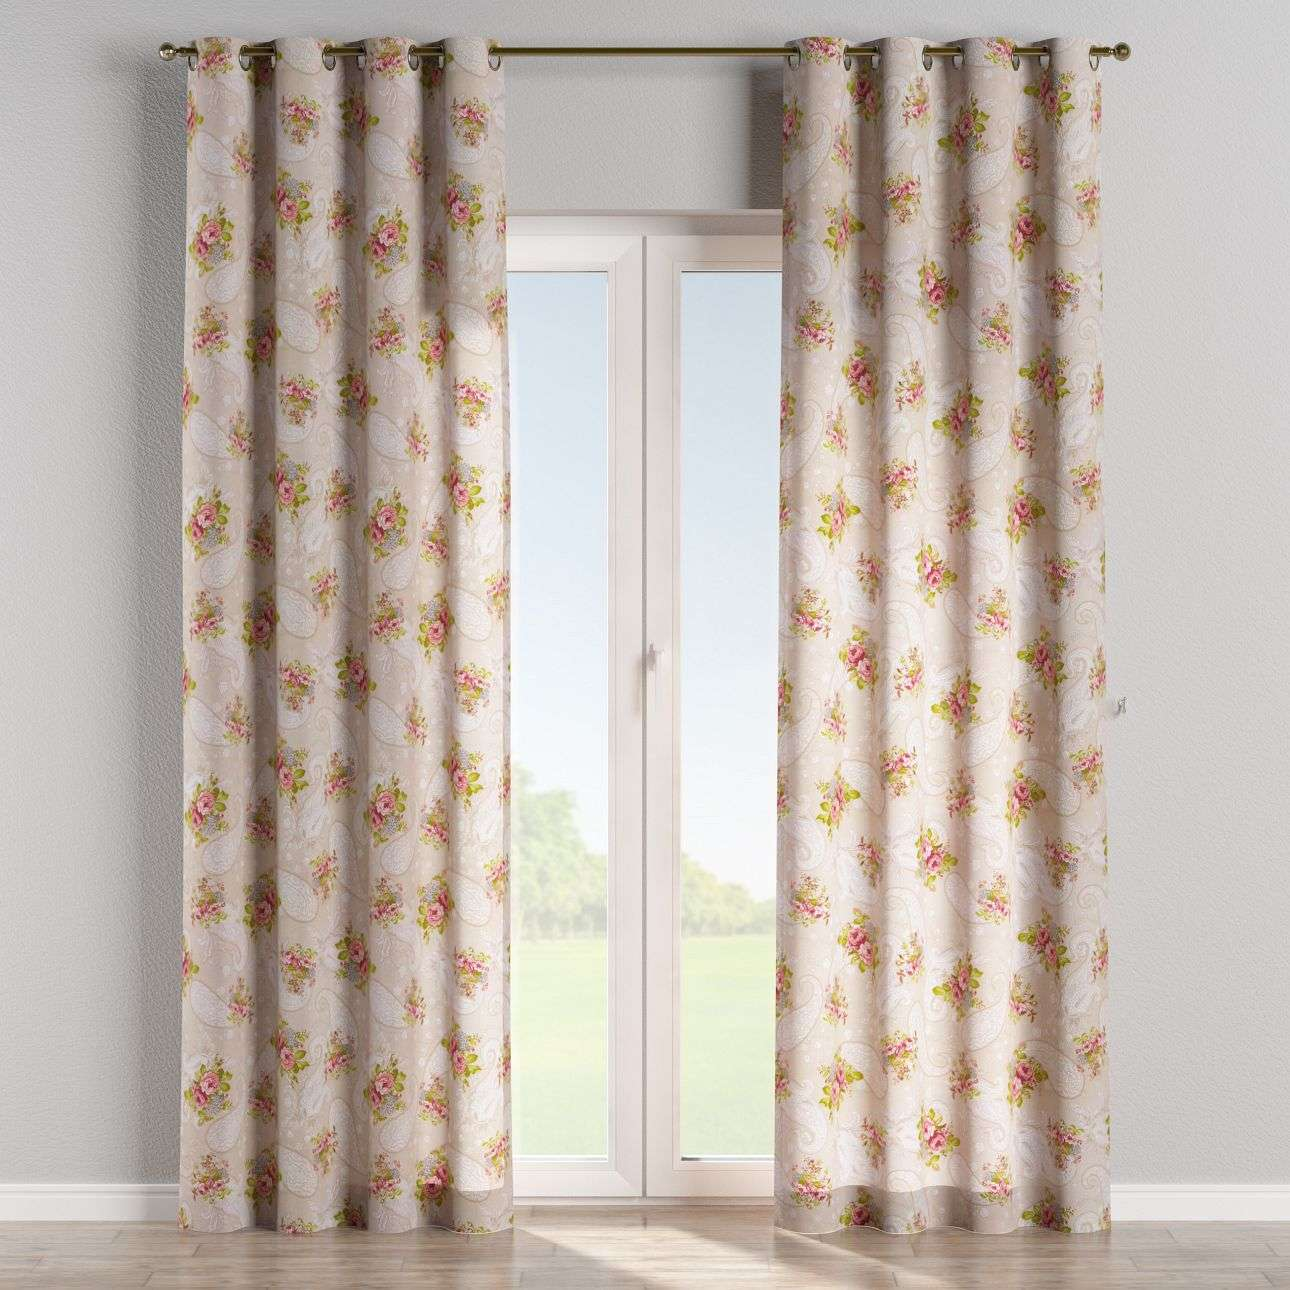 Eyelet curtains 130 x 260 cm (51 x 102 inch) in collection Flowers, fabric: 311-15